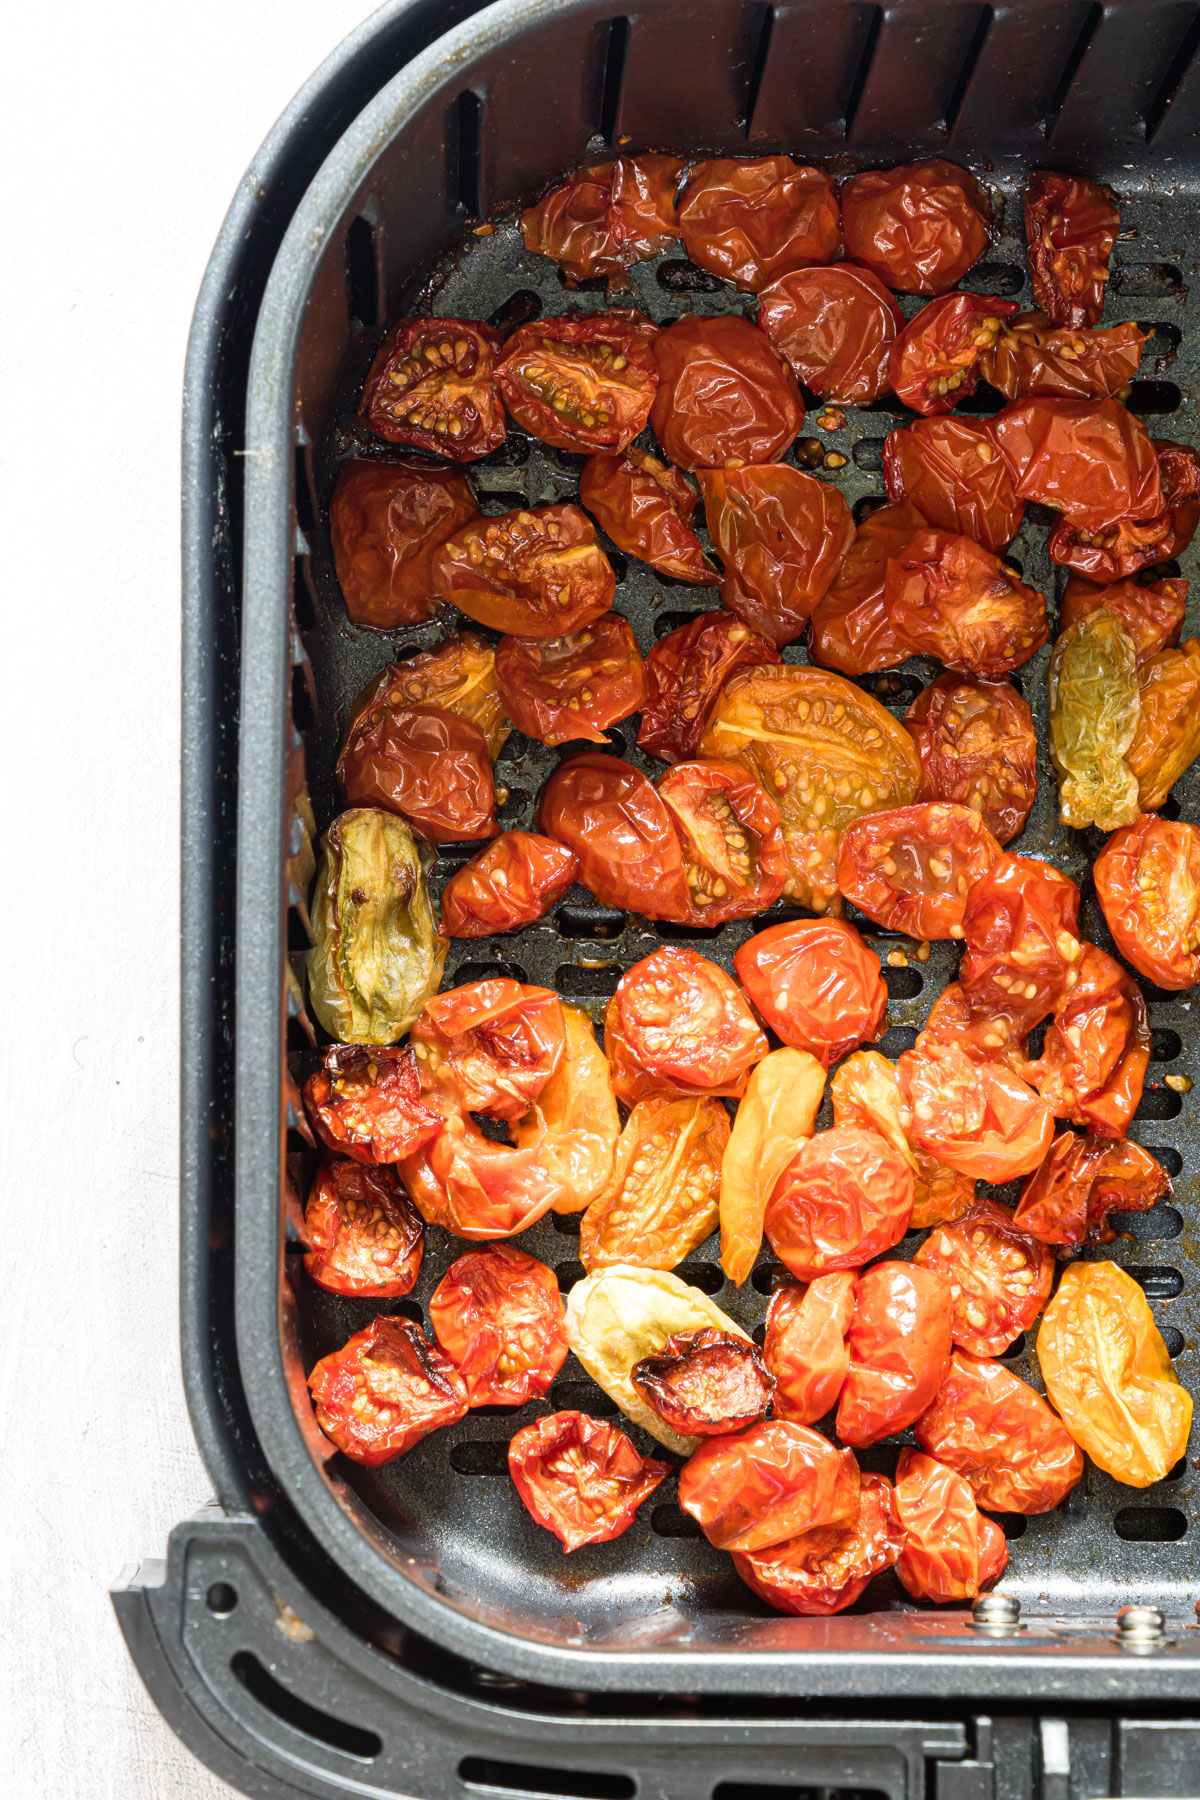 Air fryer slow roasted tomatoes in an an air fryer basket